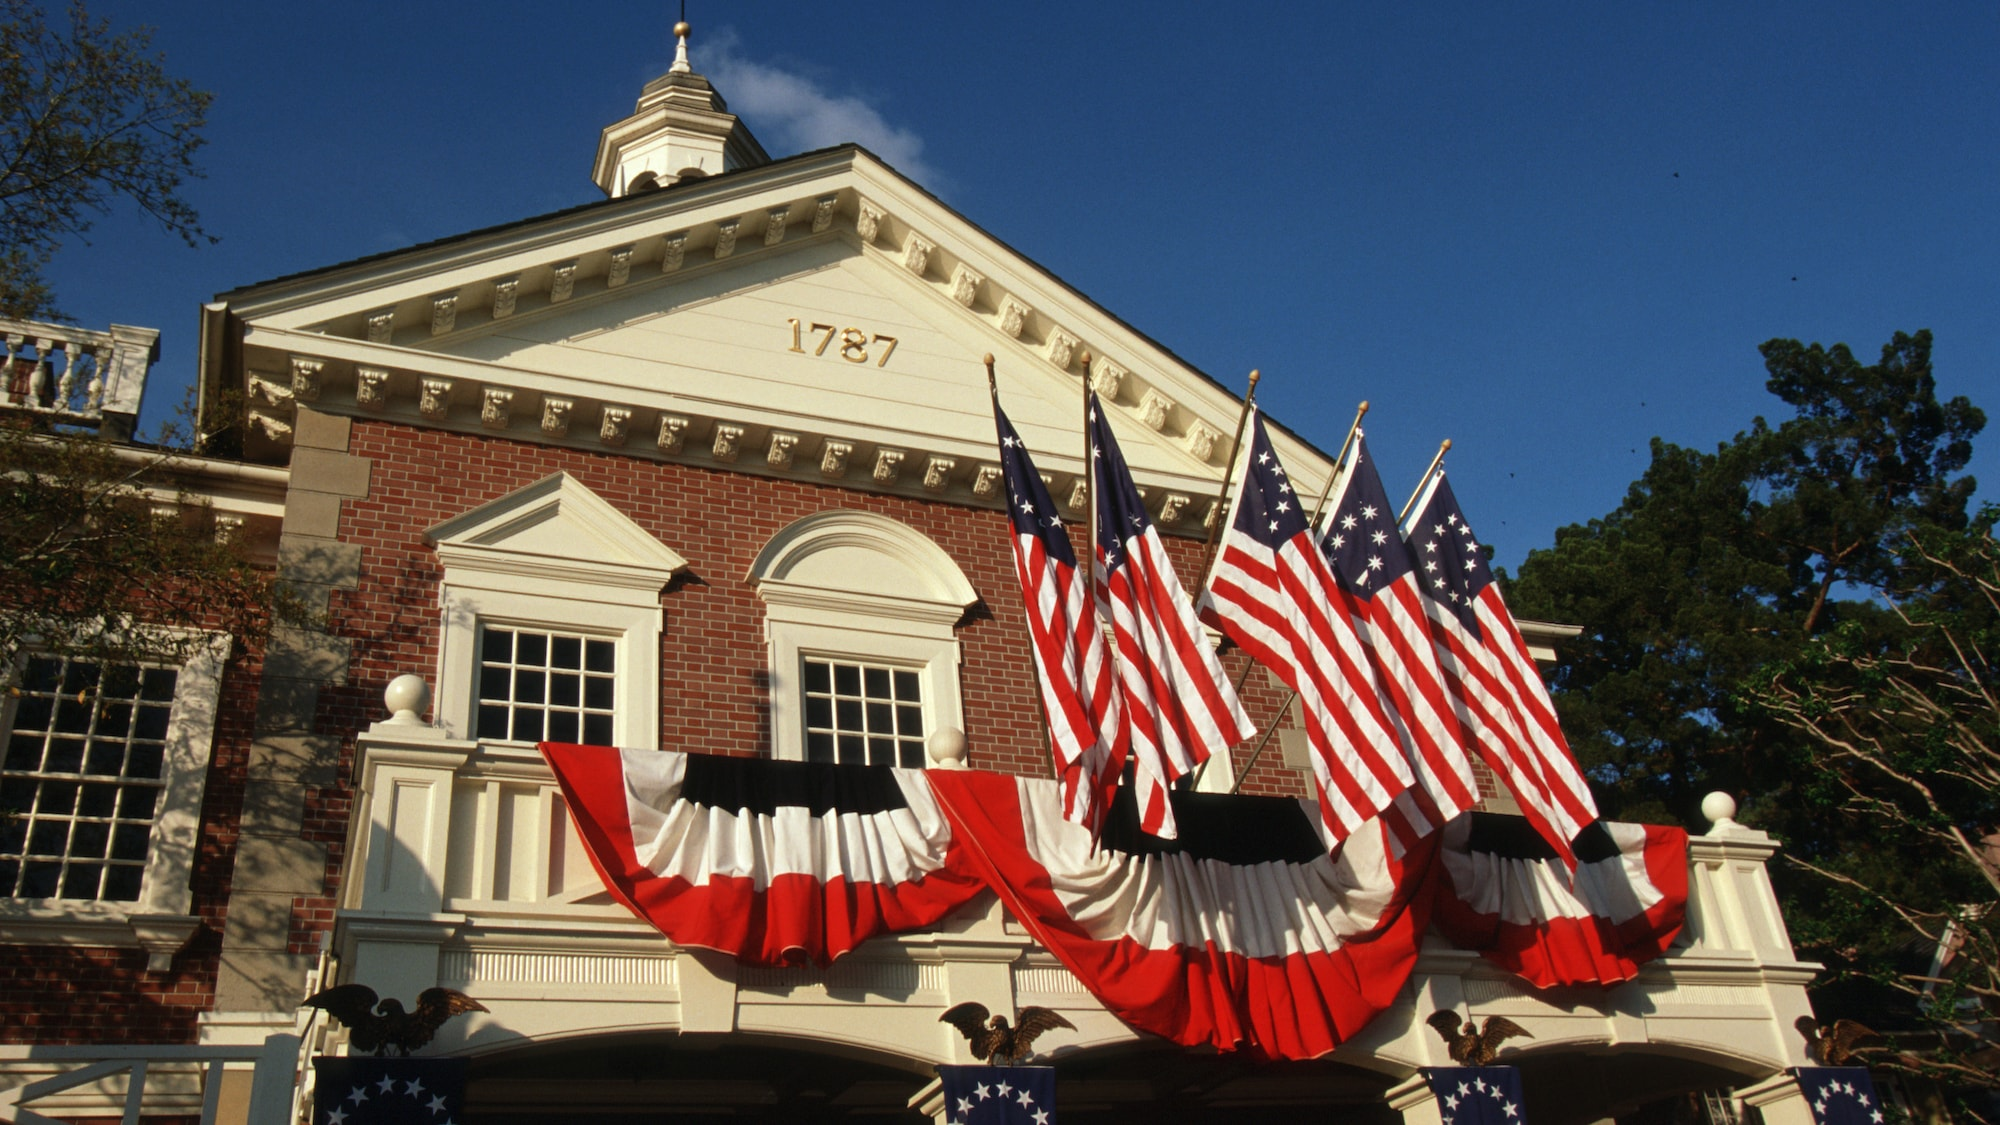 Image of The Hall of Presidents building exterior displaying American flags.